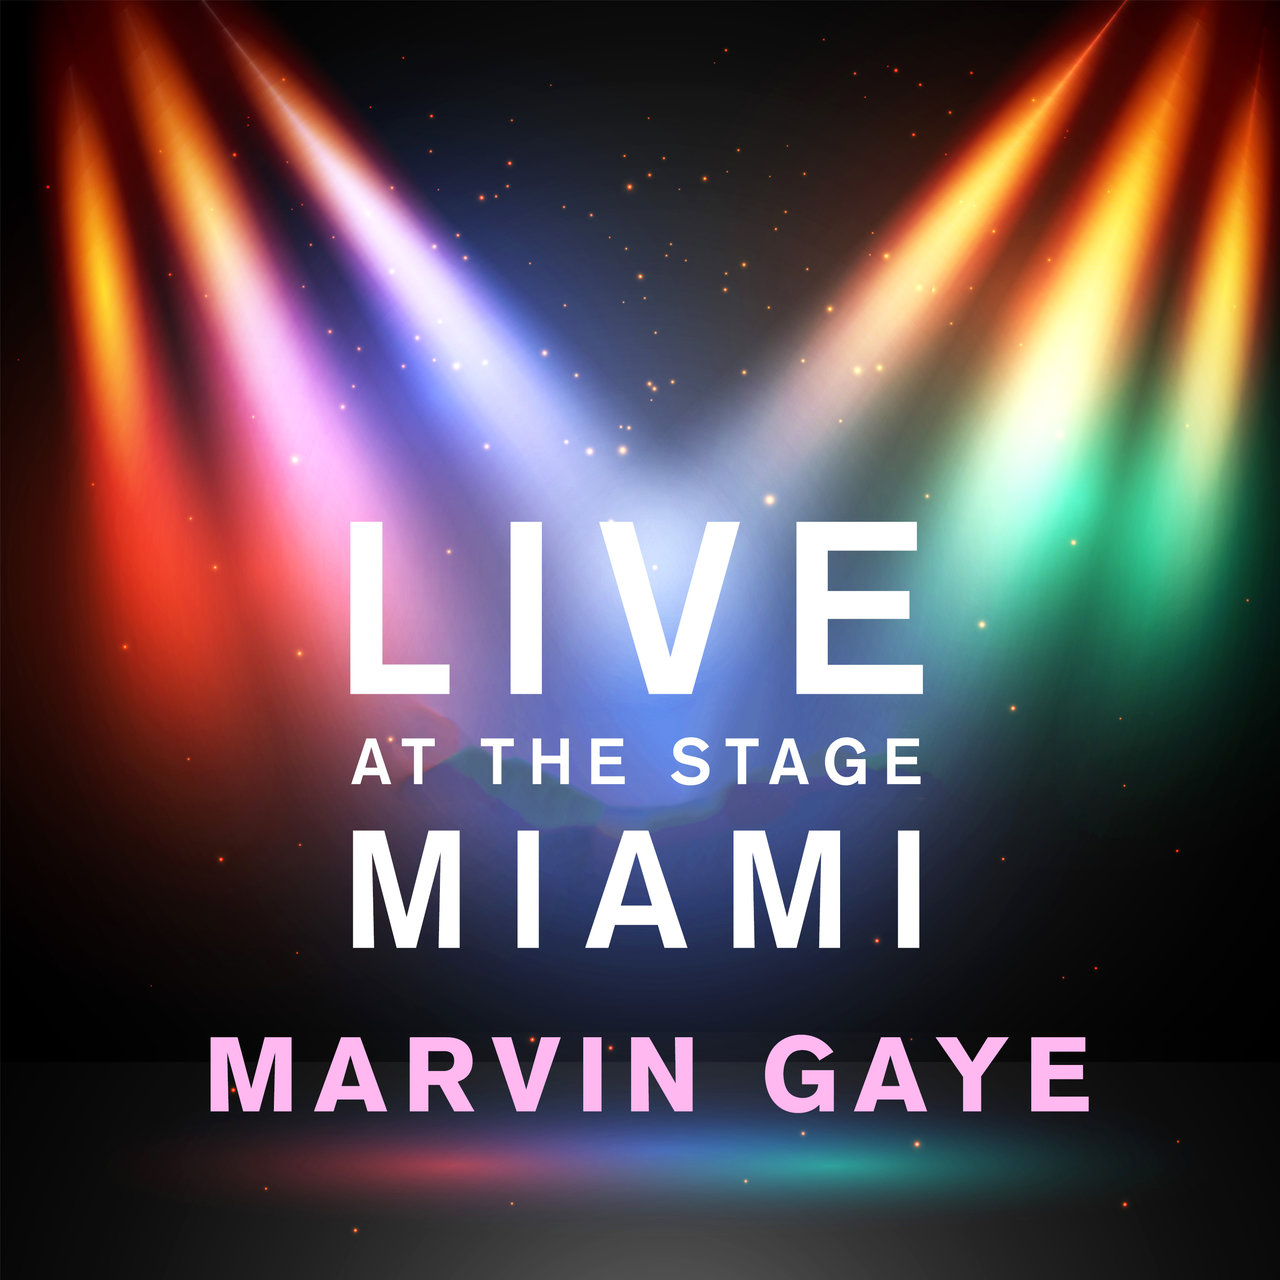 Marvin Gaye - Live at the Stage Miami